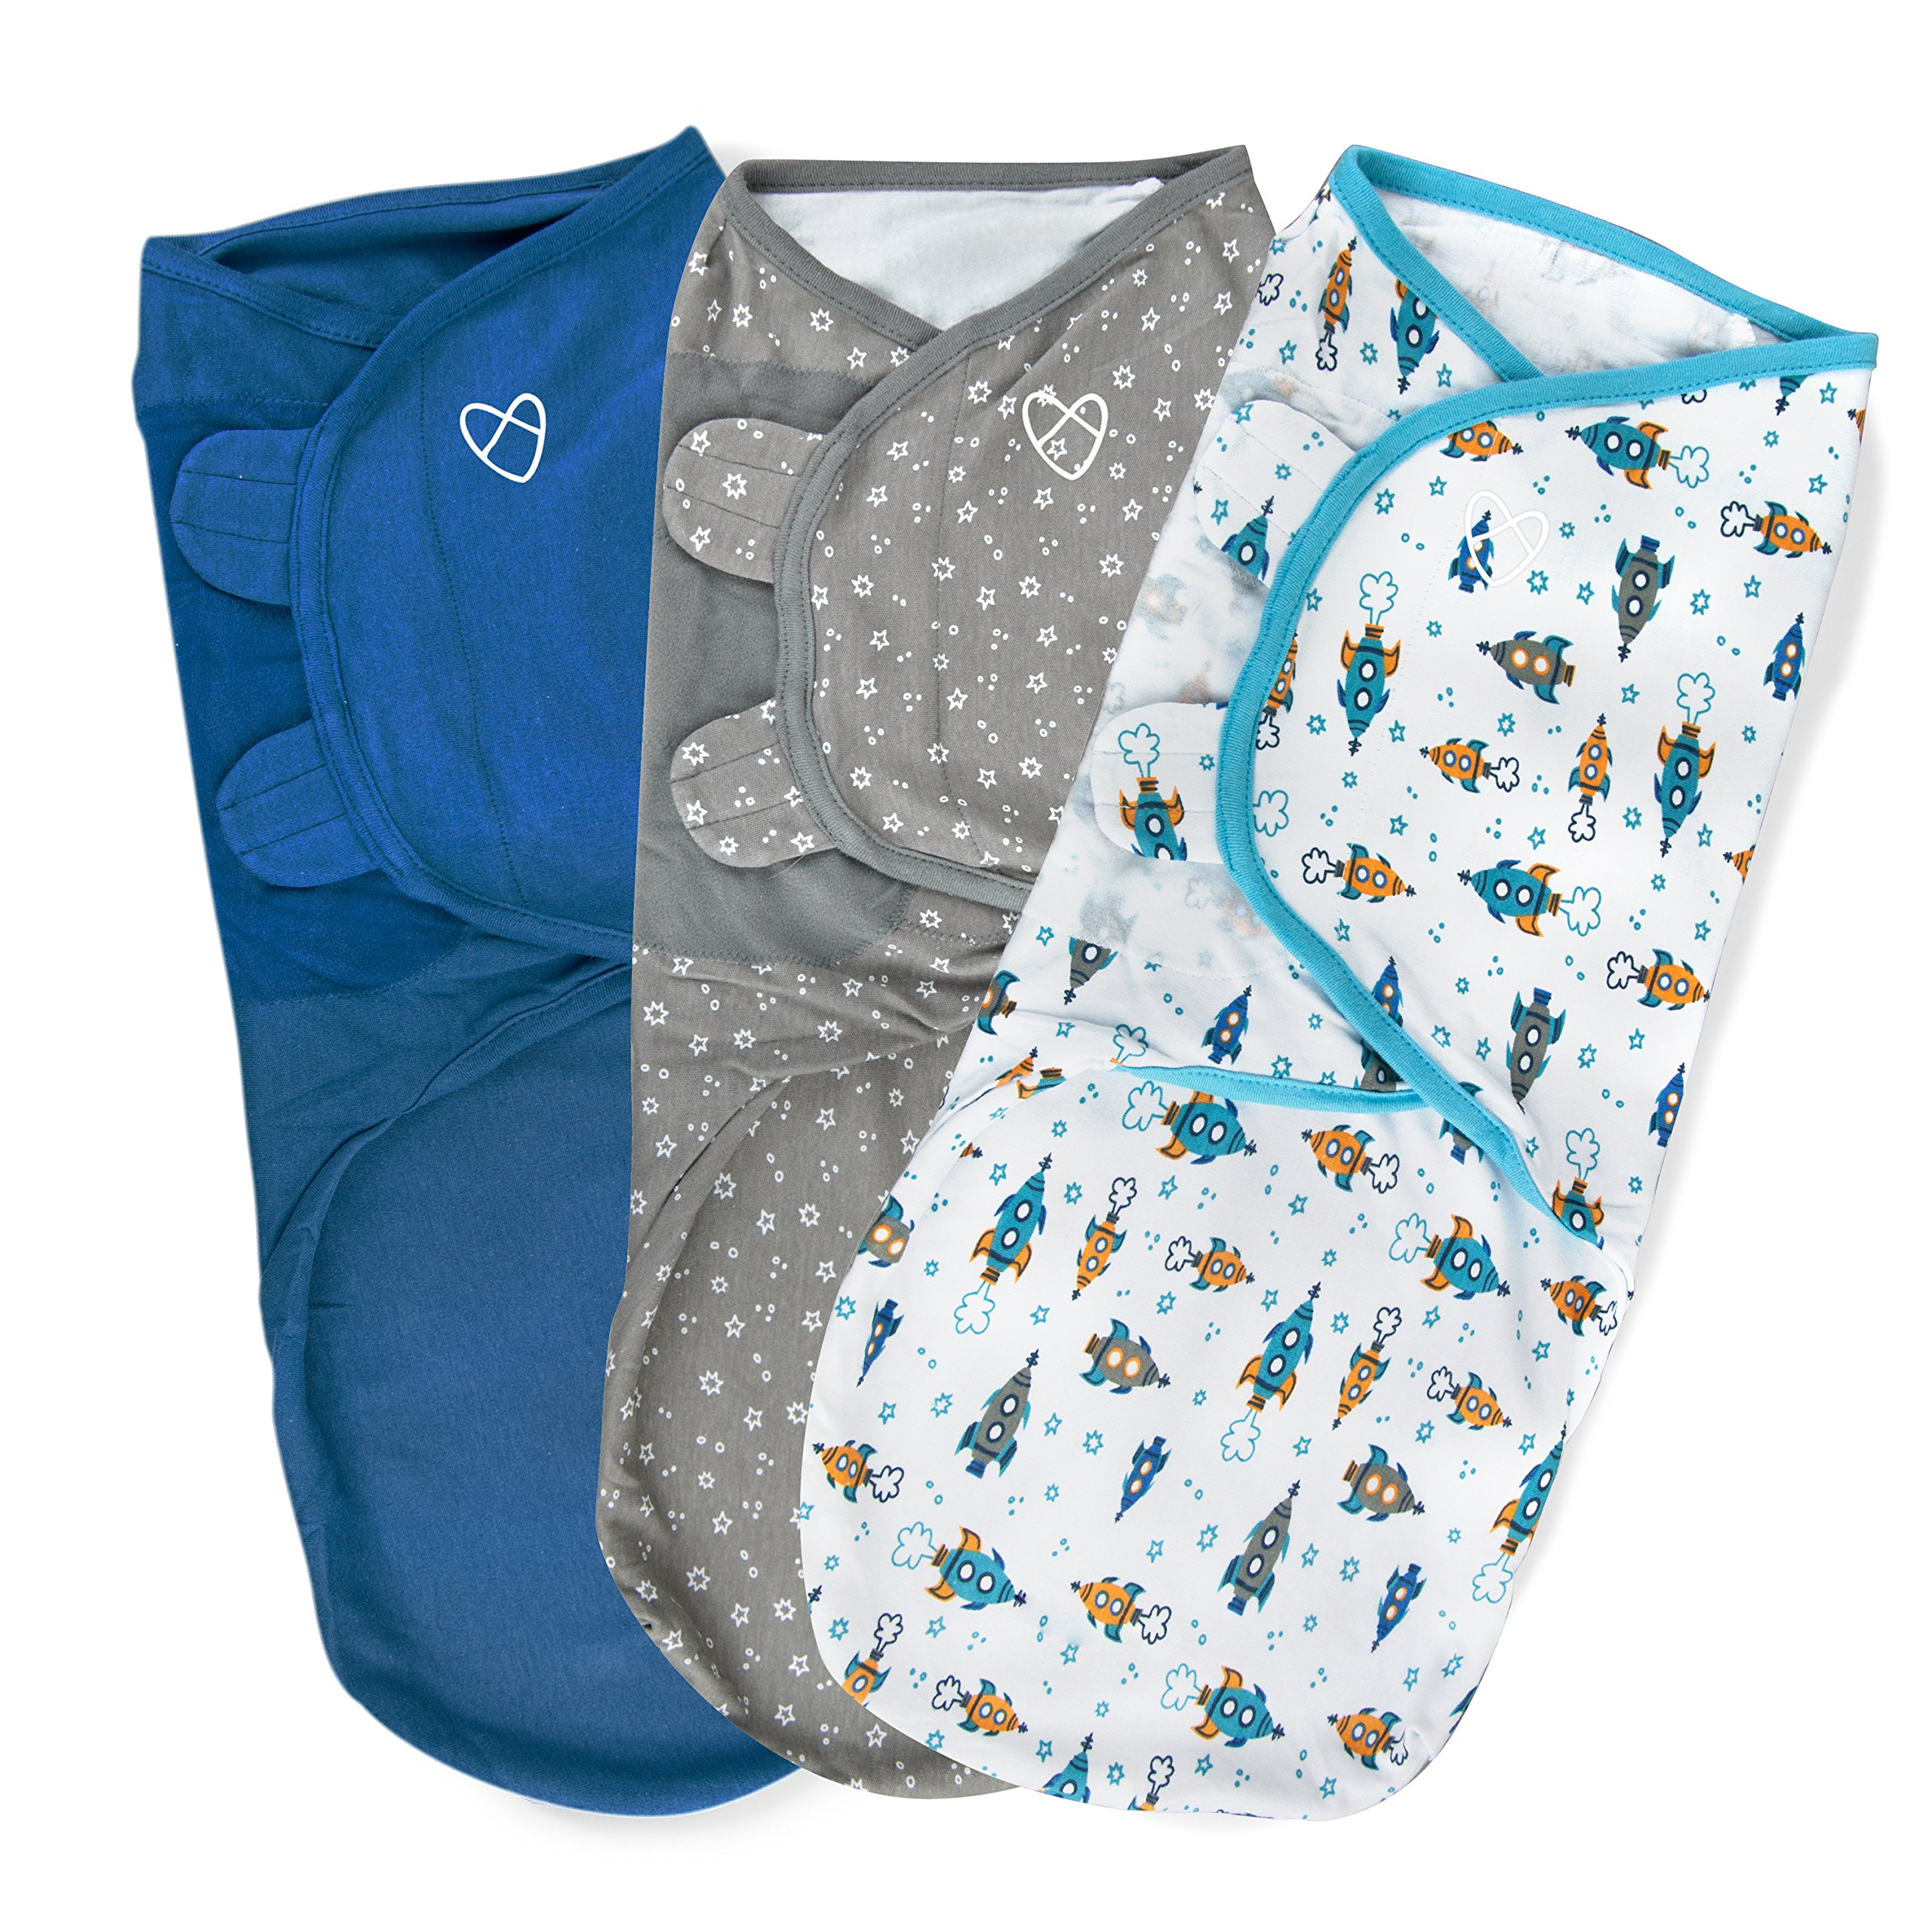 SwaddleMe Original Swaddle 3-PK, Superstar (LG) by SwaddleMe